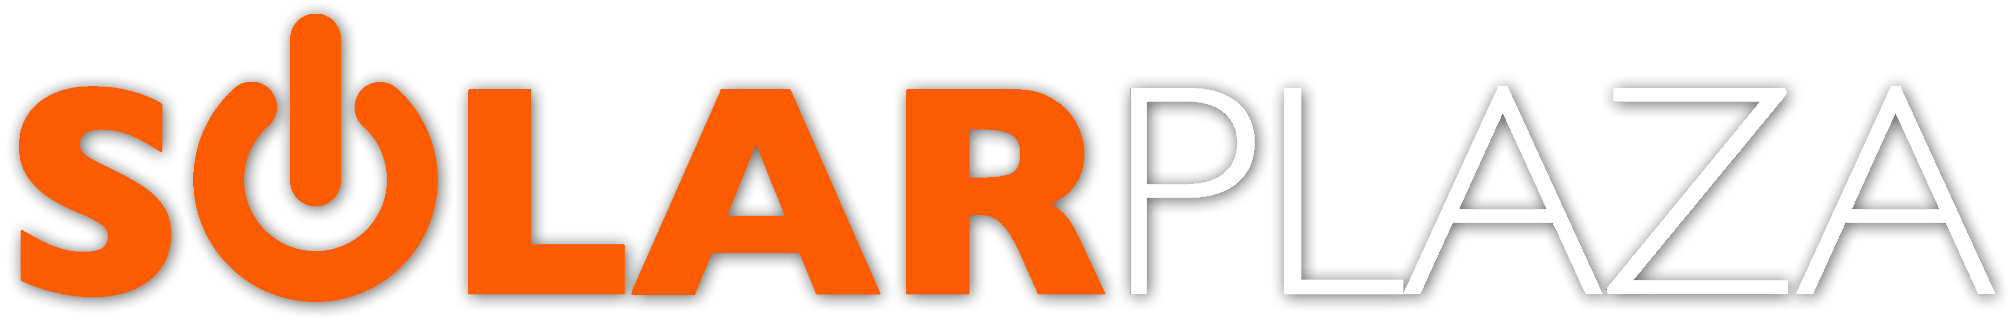 Solarplaza Logo (orange-white-no-slogan) (PNG) - with shadow for websites.png